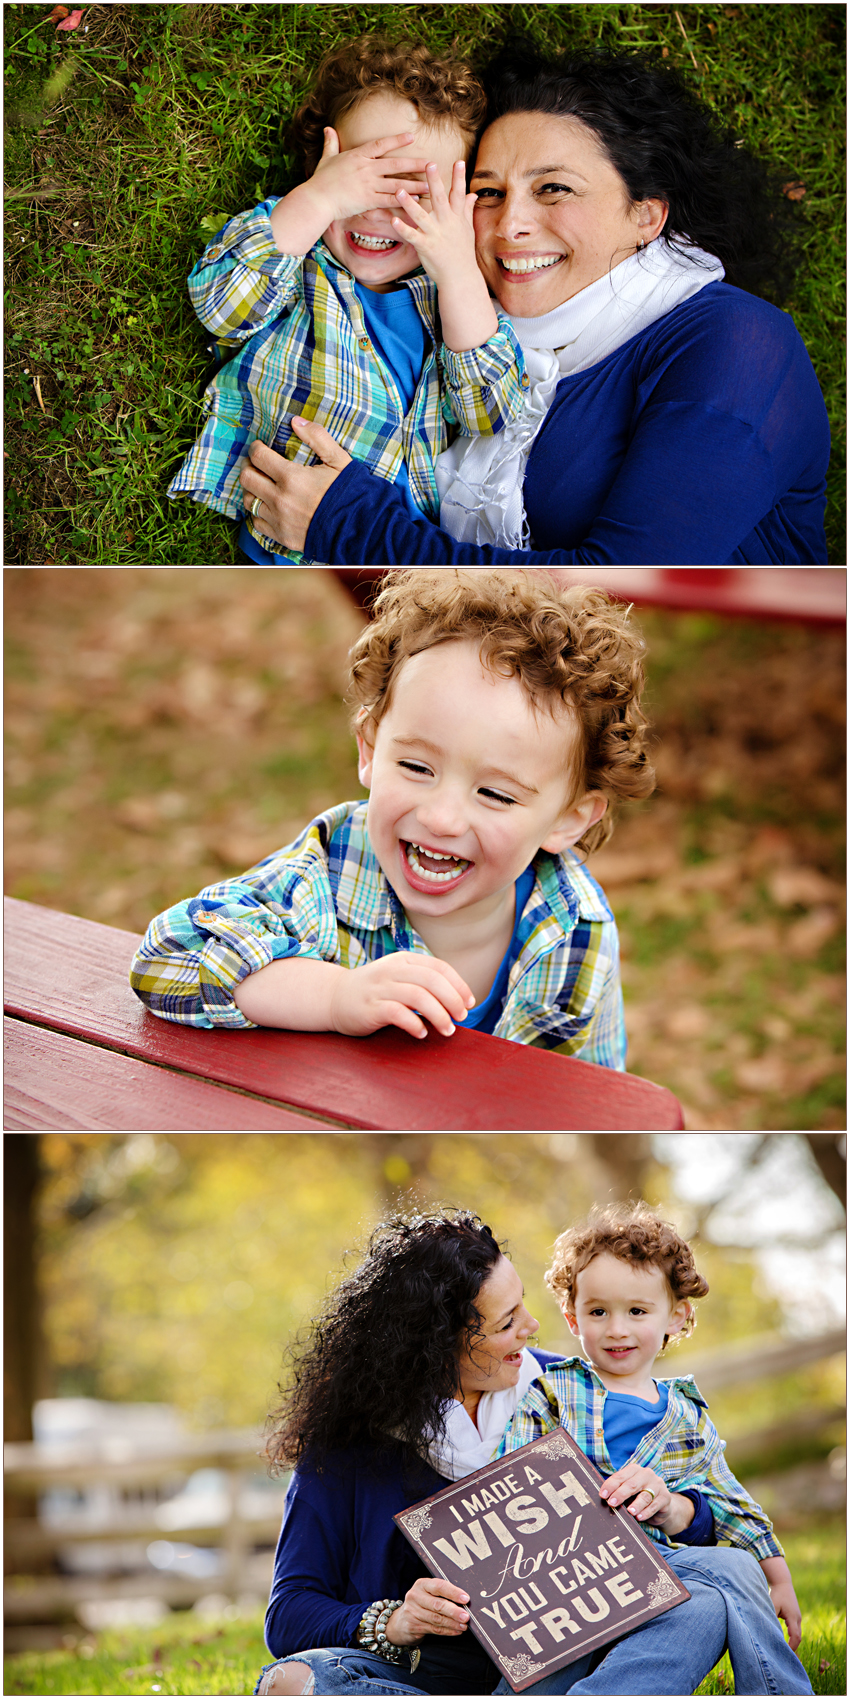 Playful Marvin, North Carolina Family Photographer | A Wish